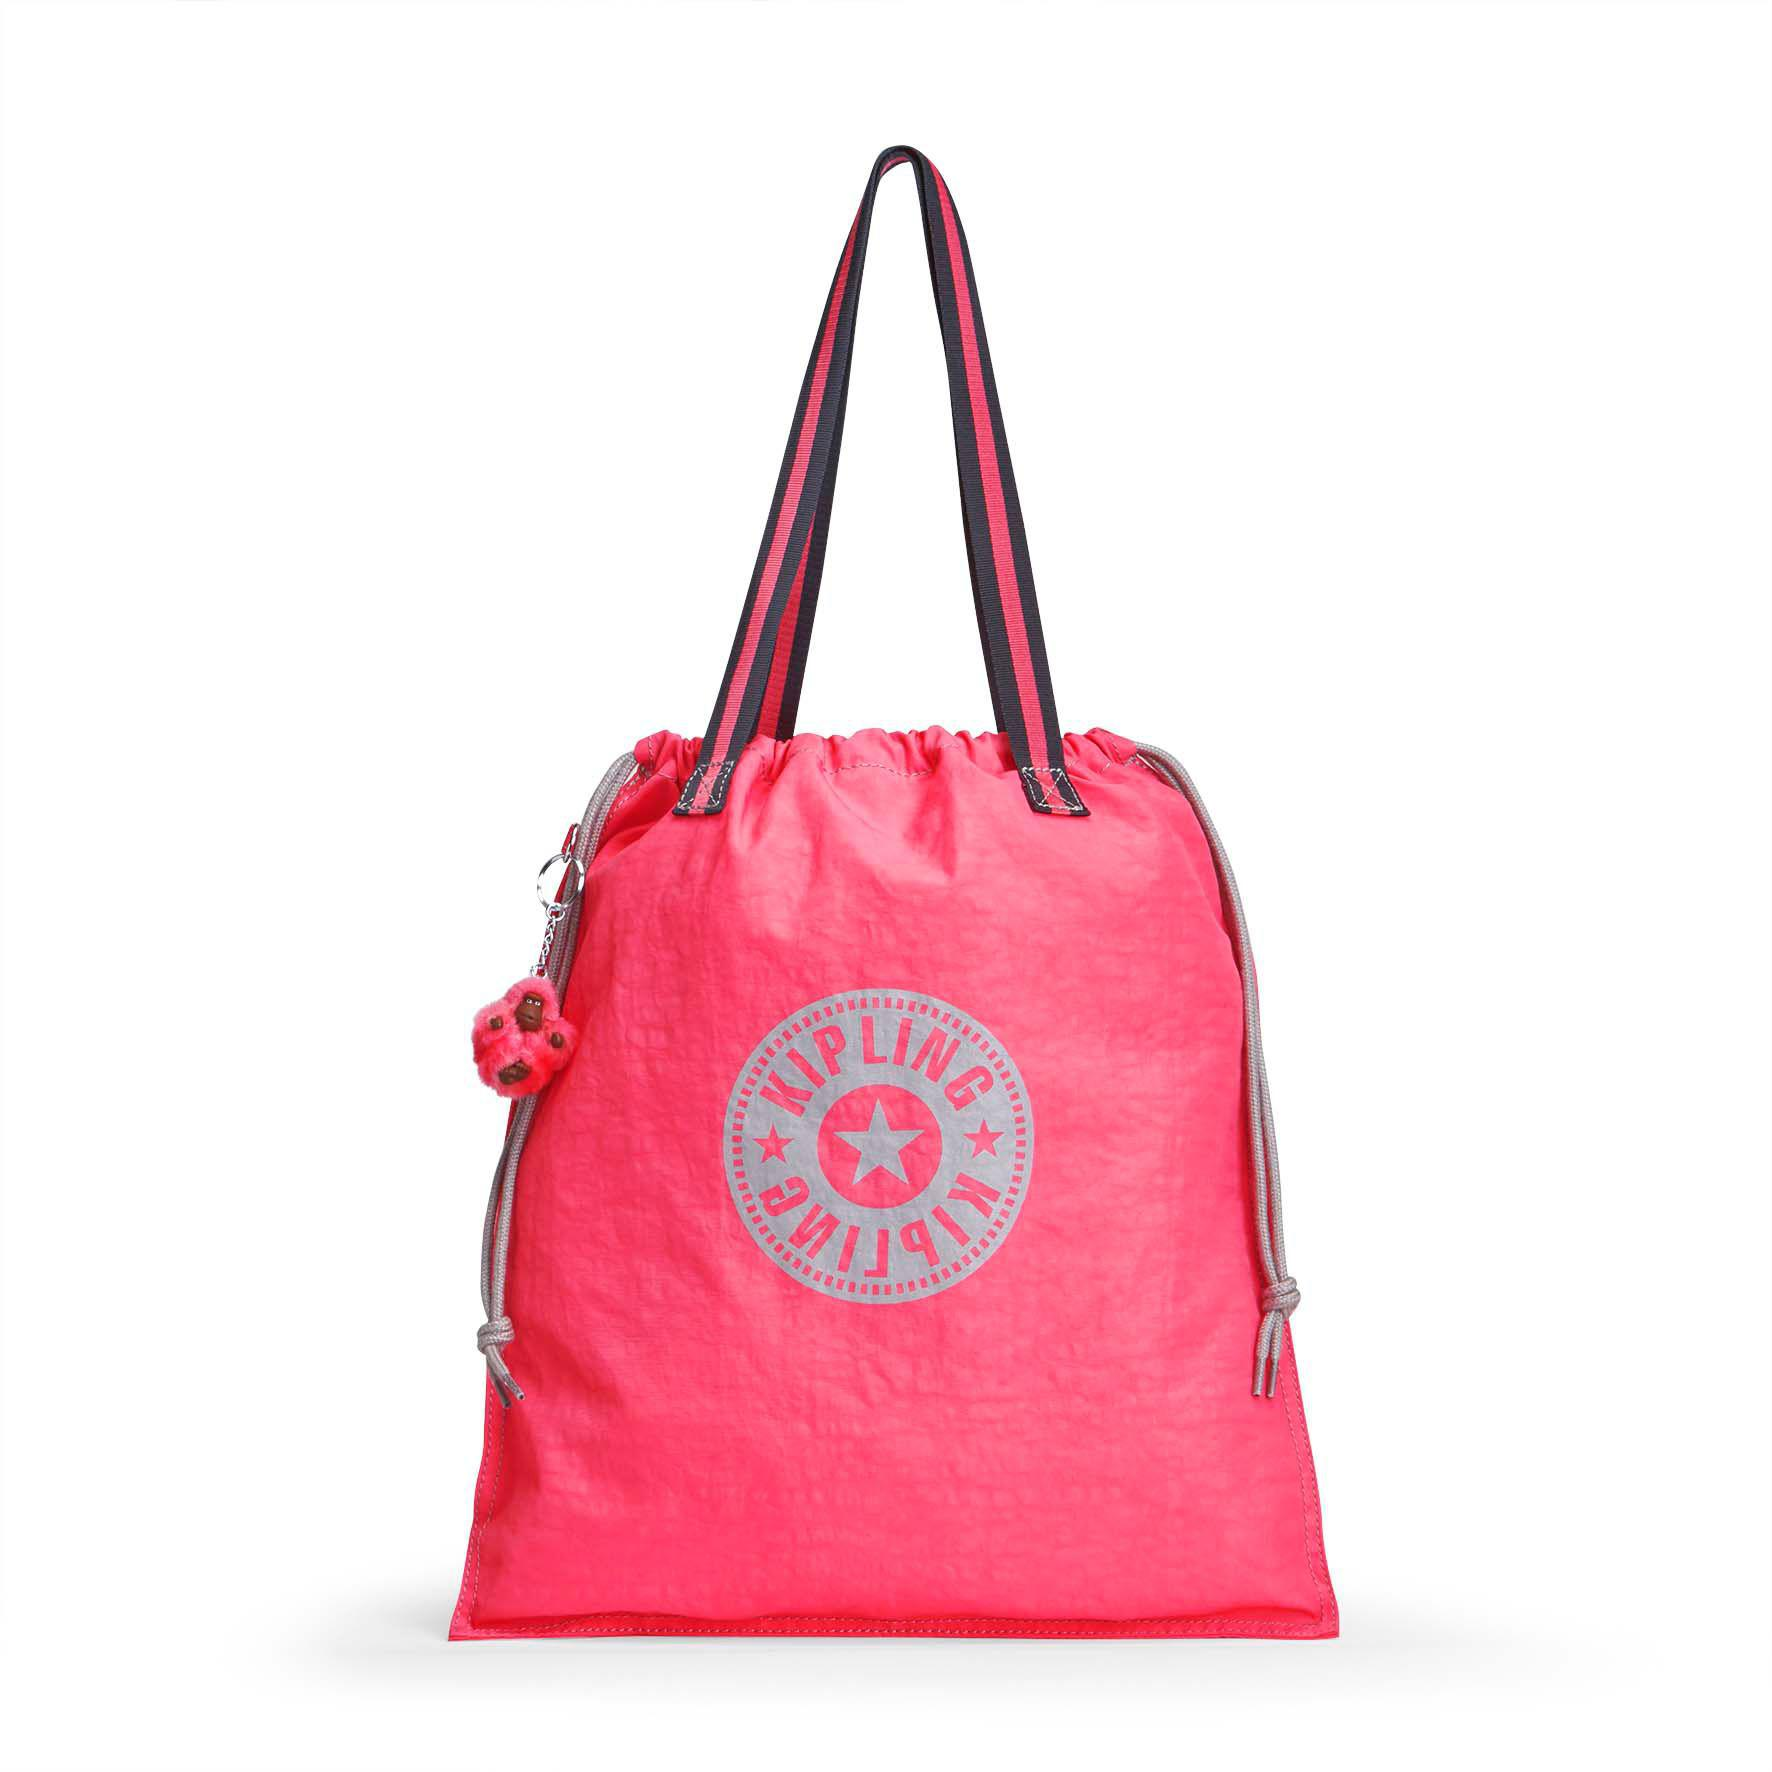 Kipling New Hiphurray Tote Foldable in Pink - Lyst 9926666371c5b